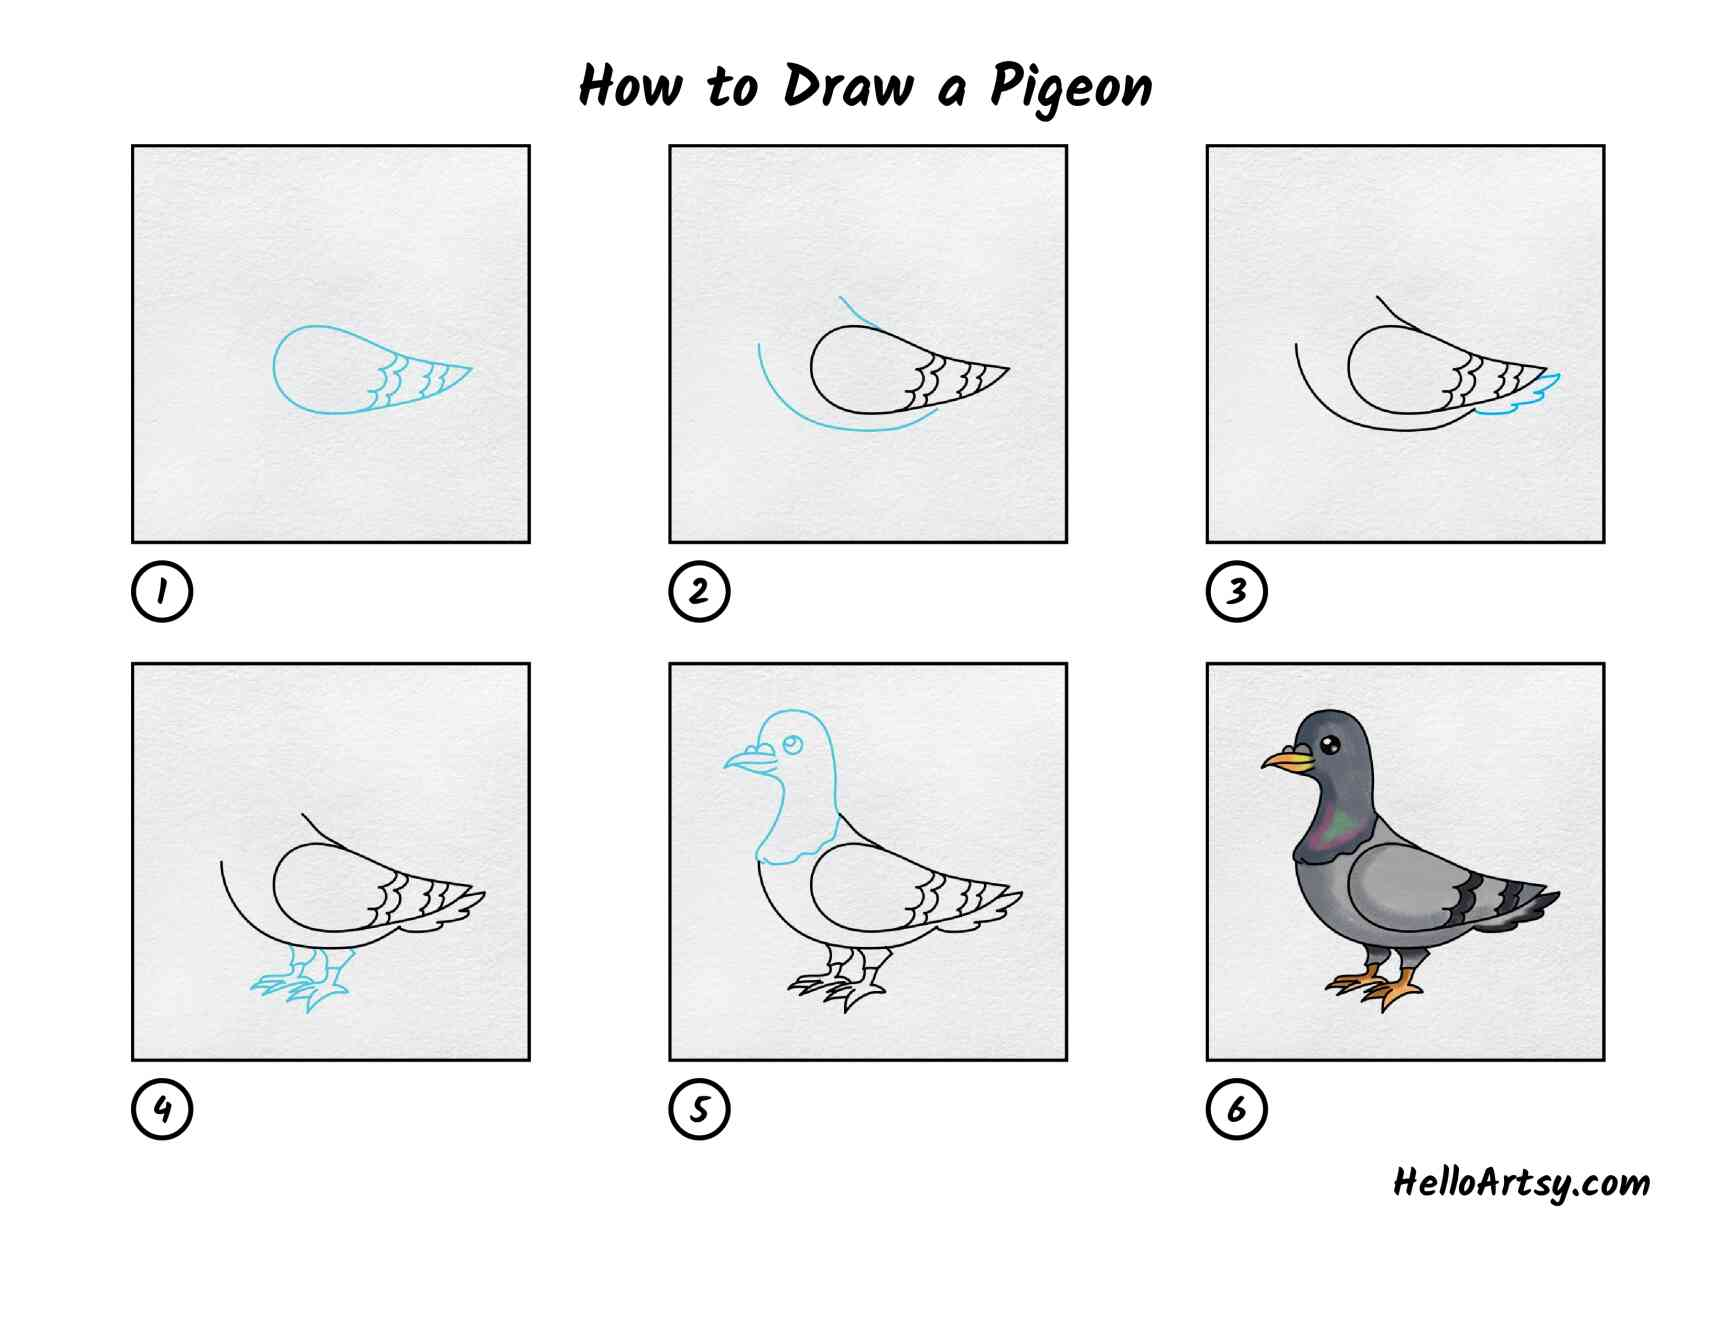 How To Draw A Pigeon: All Steps